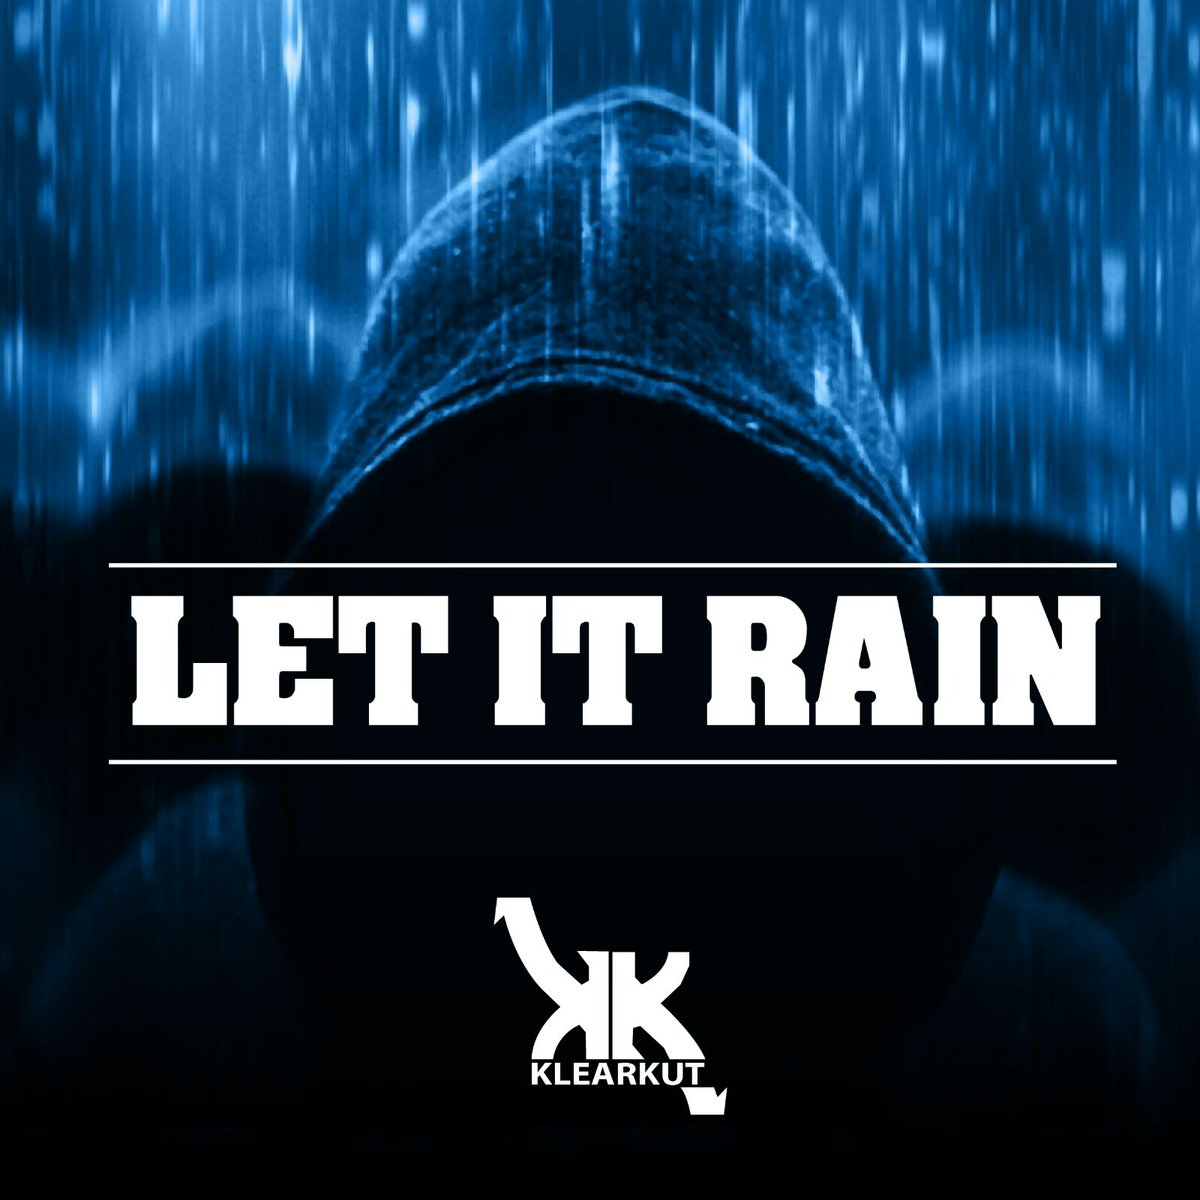 Peep some UG game: Let It Rain by KLEAR KUT https://t.co/JOgVmfhB9u #EAHipHop https://t.co/YRUUlOaIBl